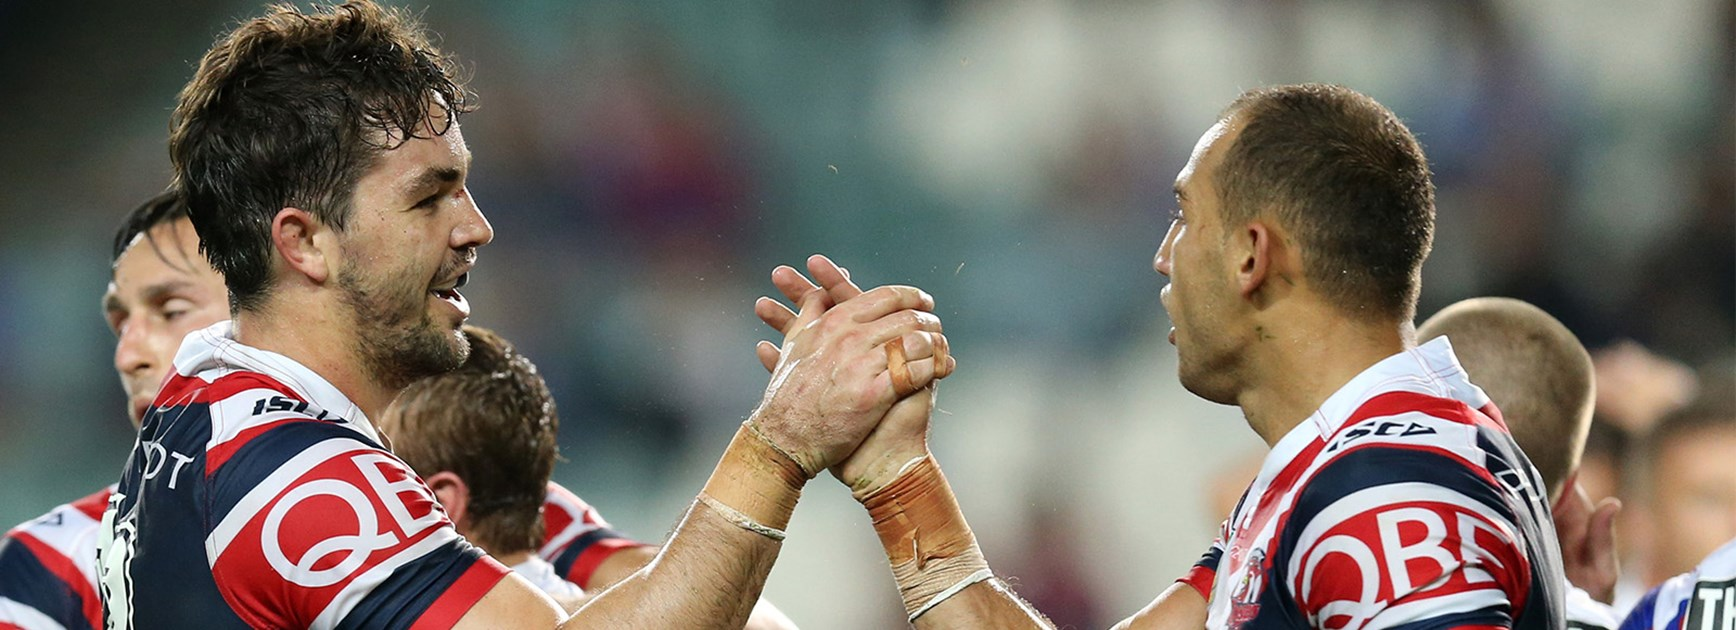 The Roosters celebrate Blake Ferguson's try against the Knights in Round 9.